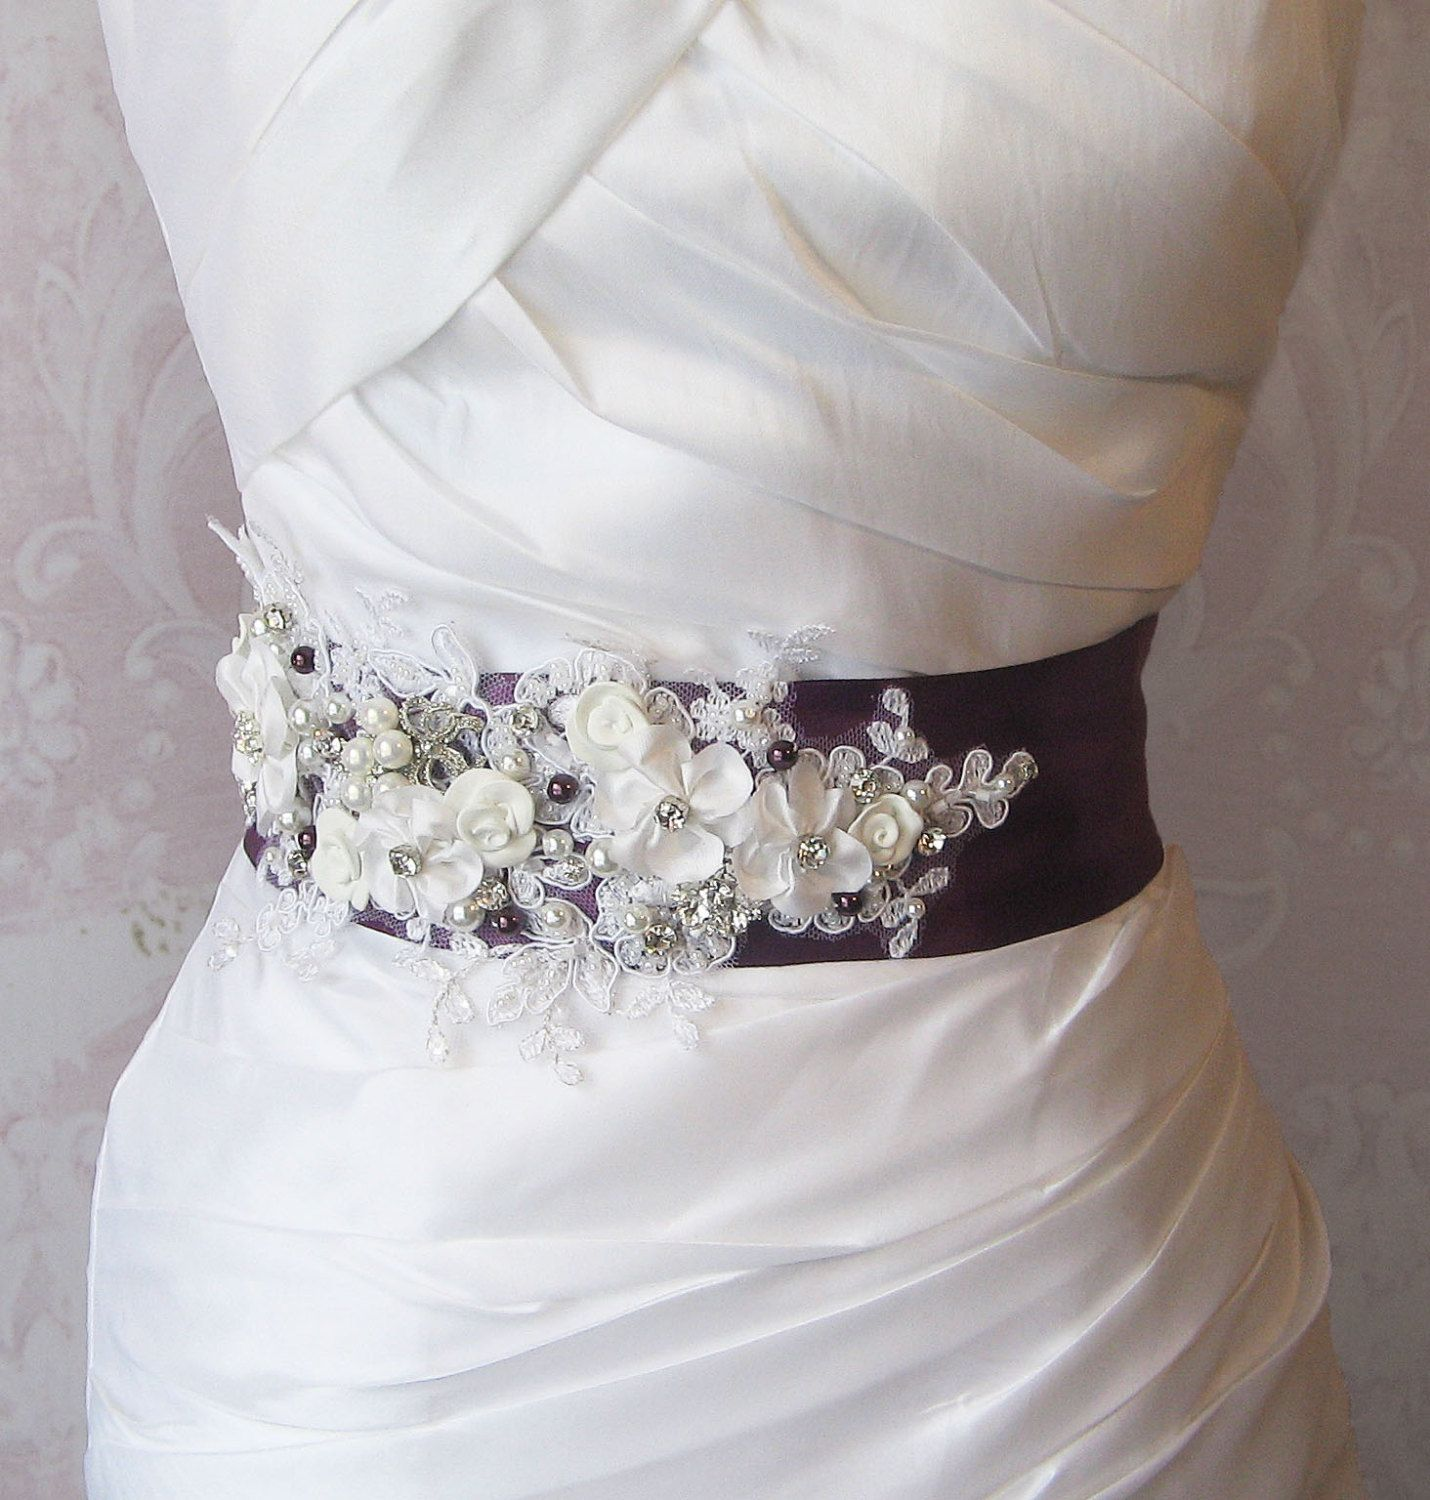 belts for wedding dresses Eggplant Purple Sash Deep Plum and White Bridal Sash Wedding Belt Rhinestone and